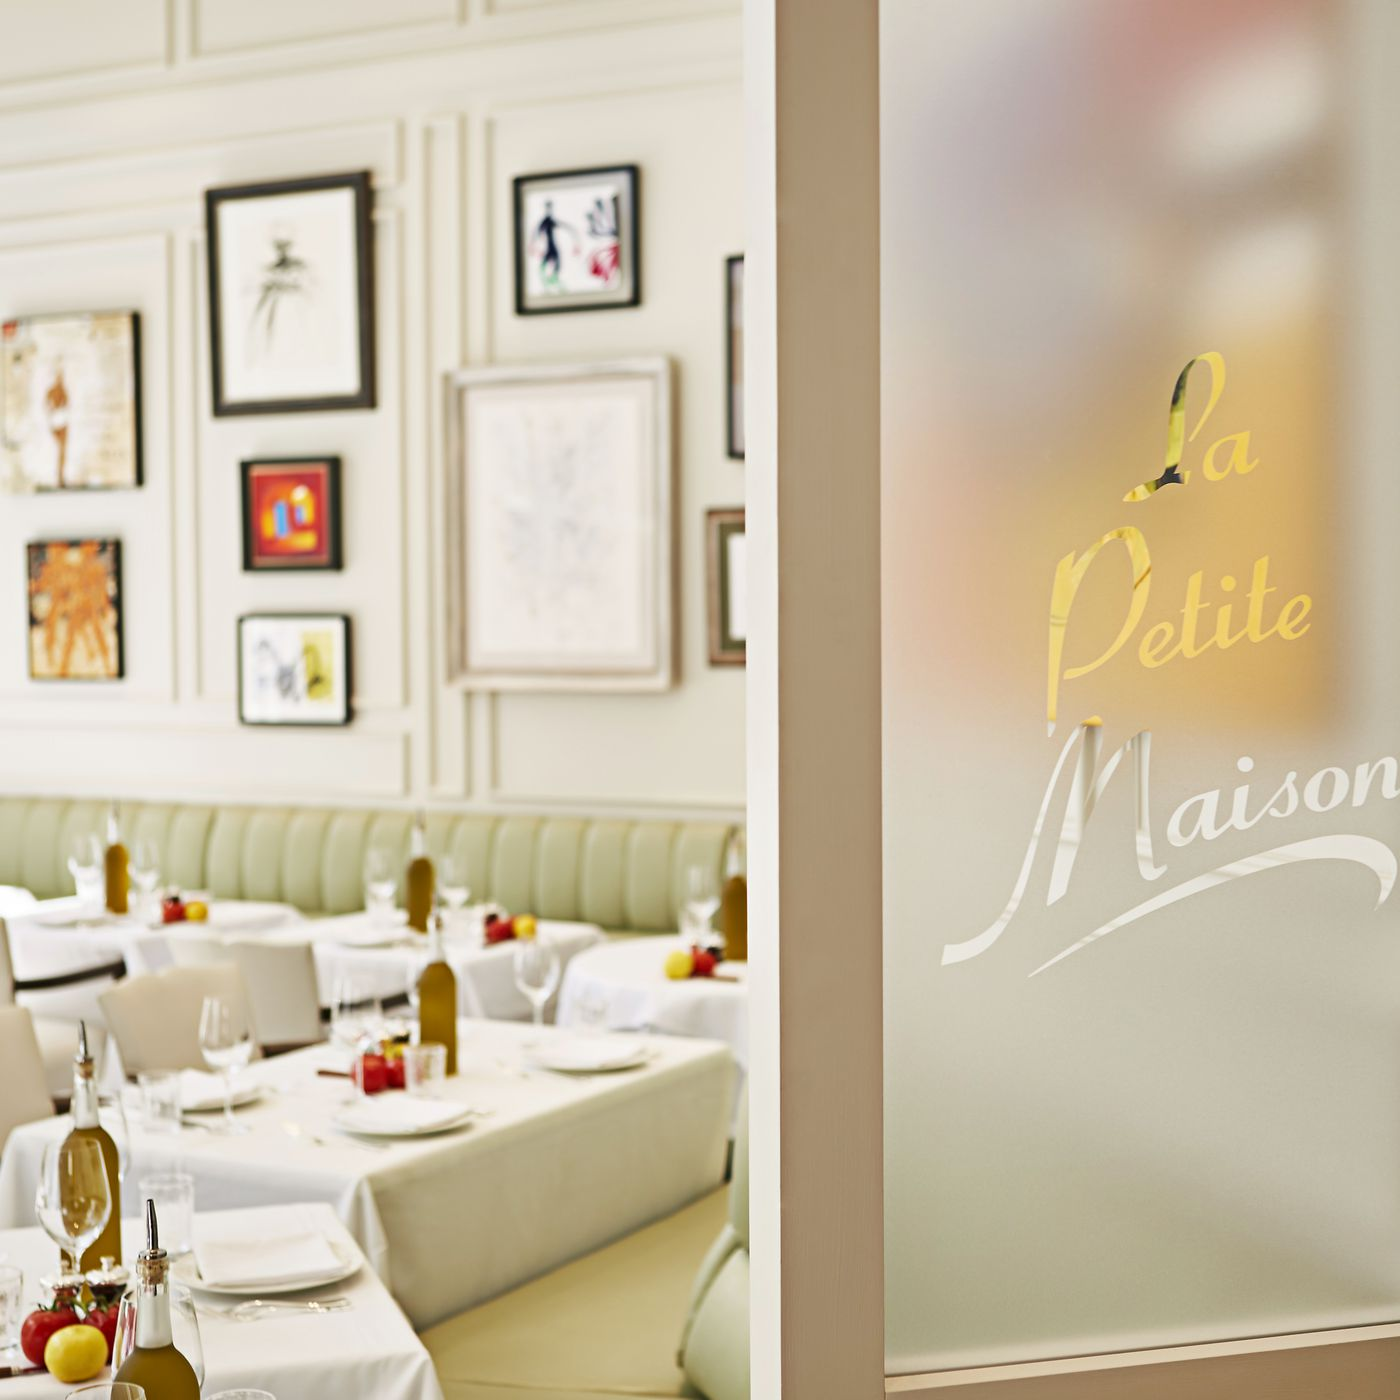 Bar Le French Flair la petite maison brings sophisticated french flair to